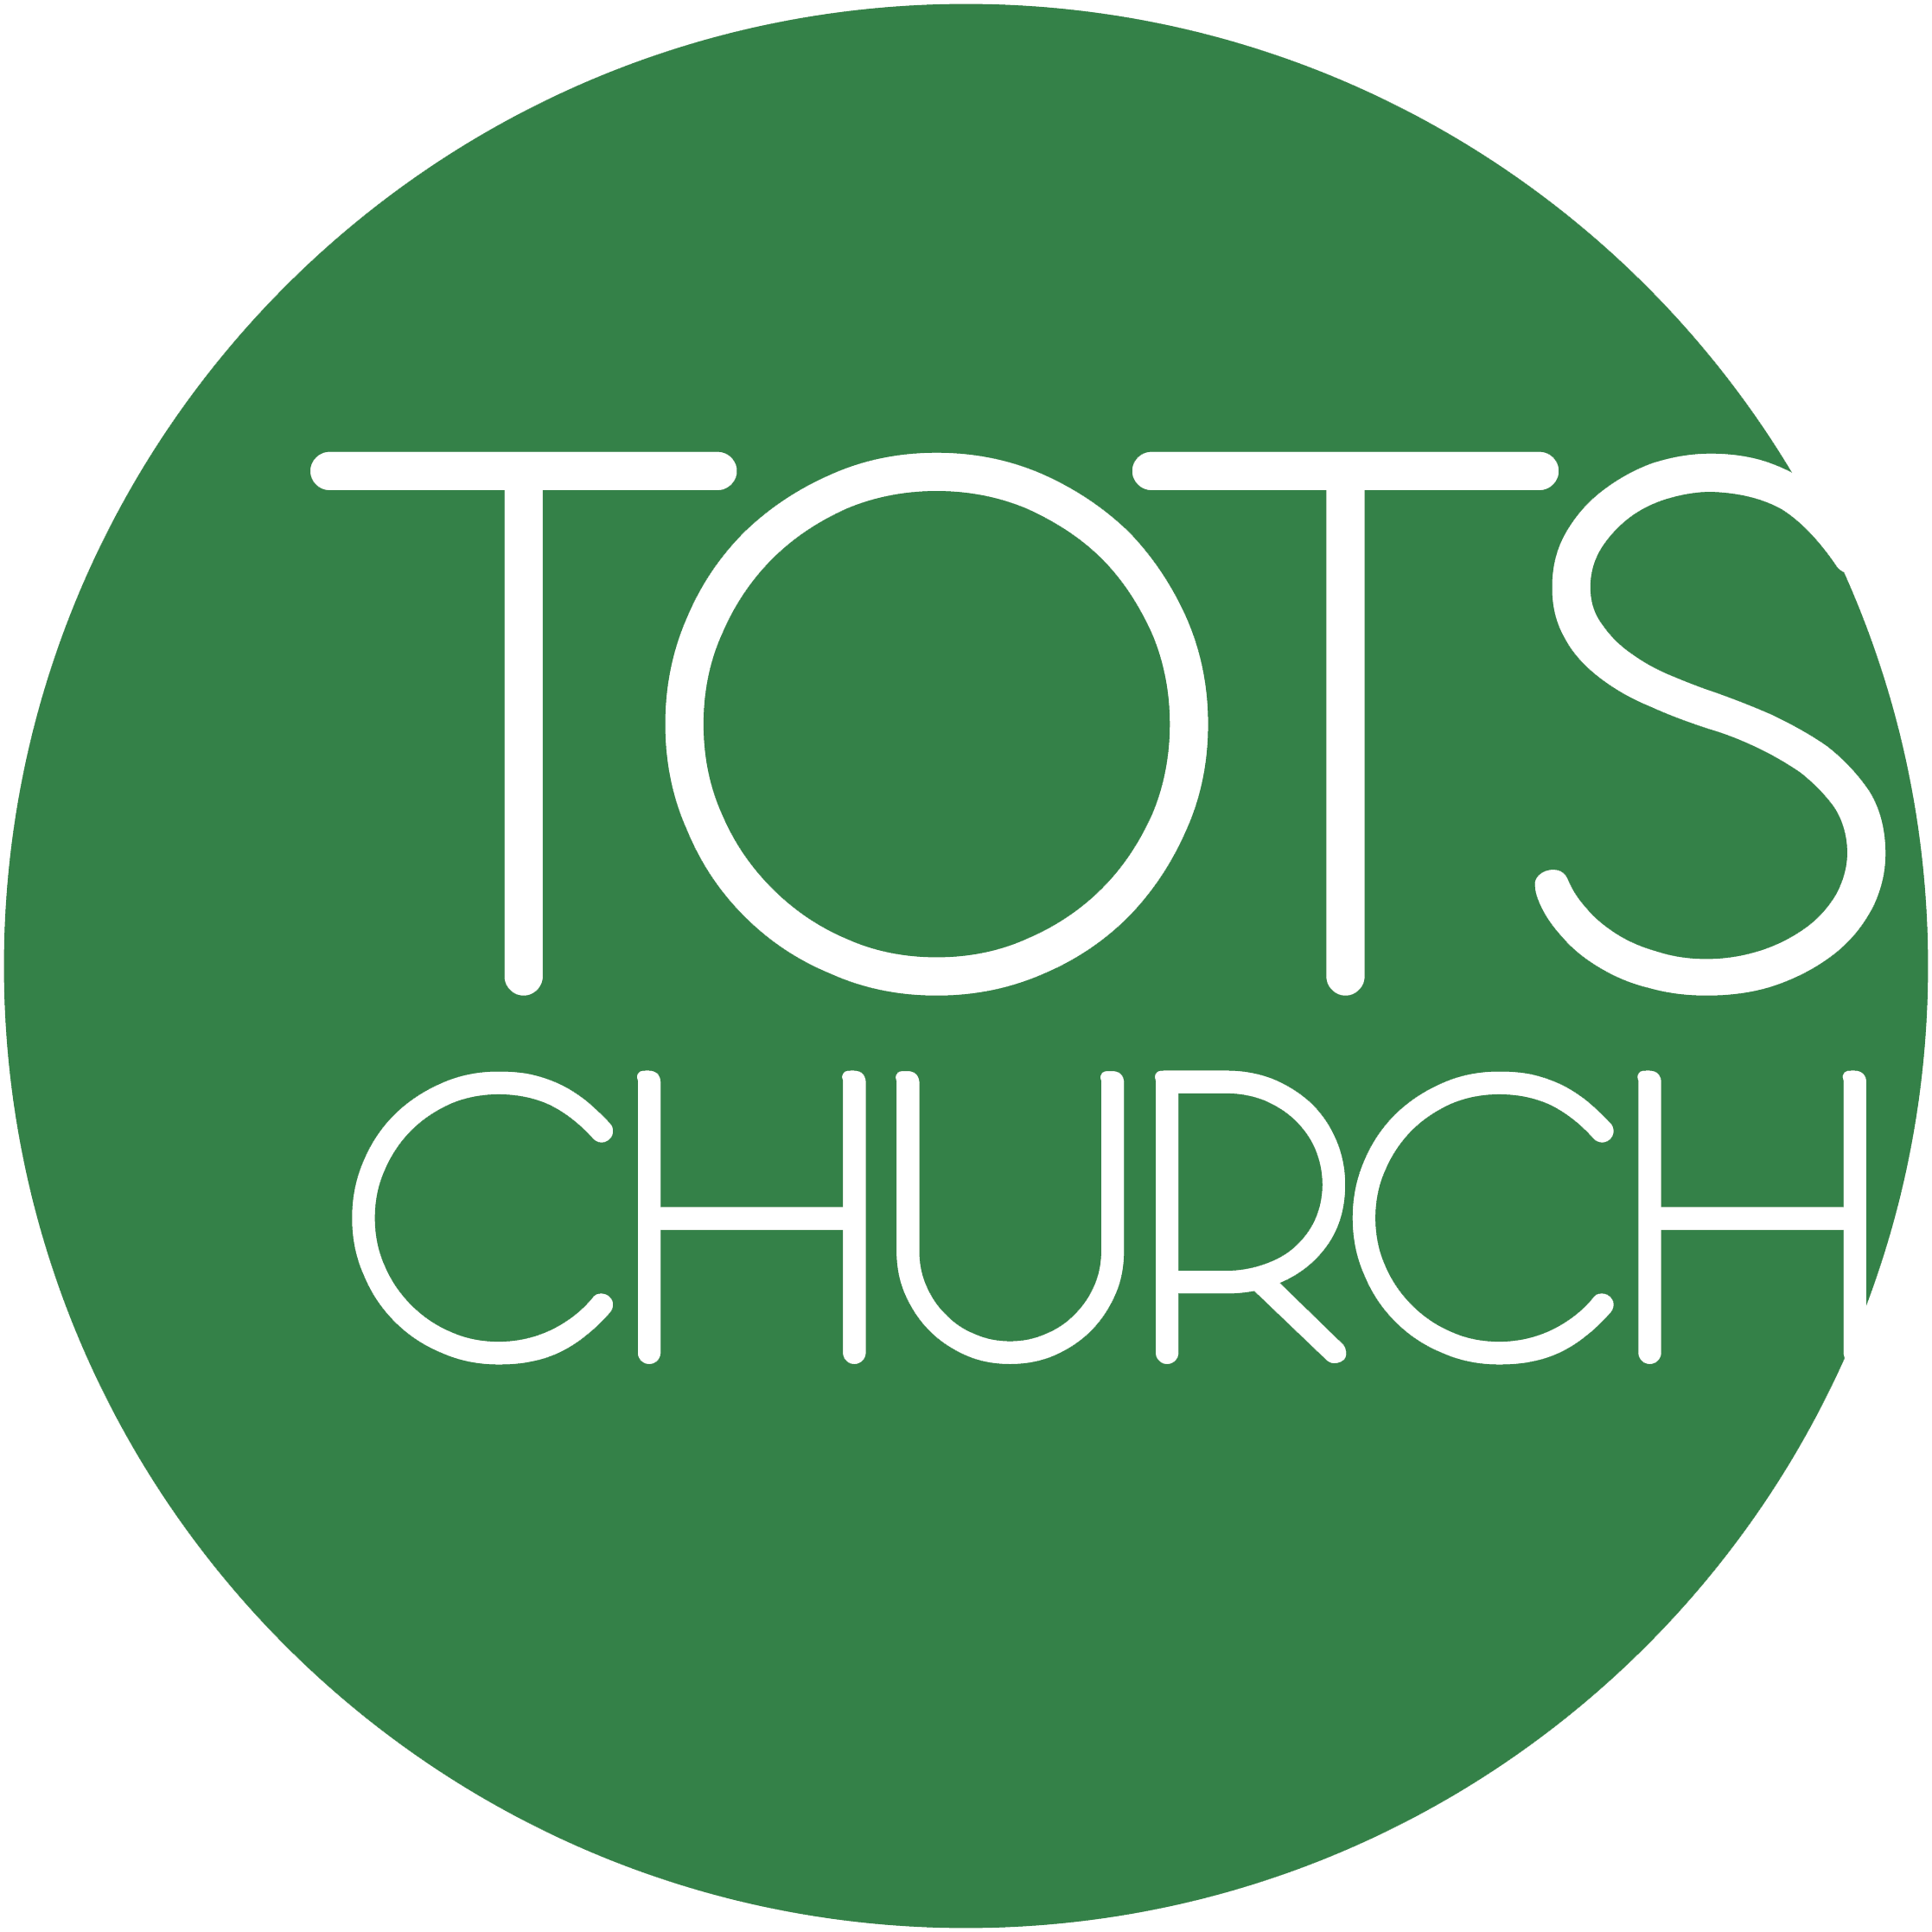 Tots-Church-logo no background